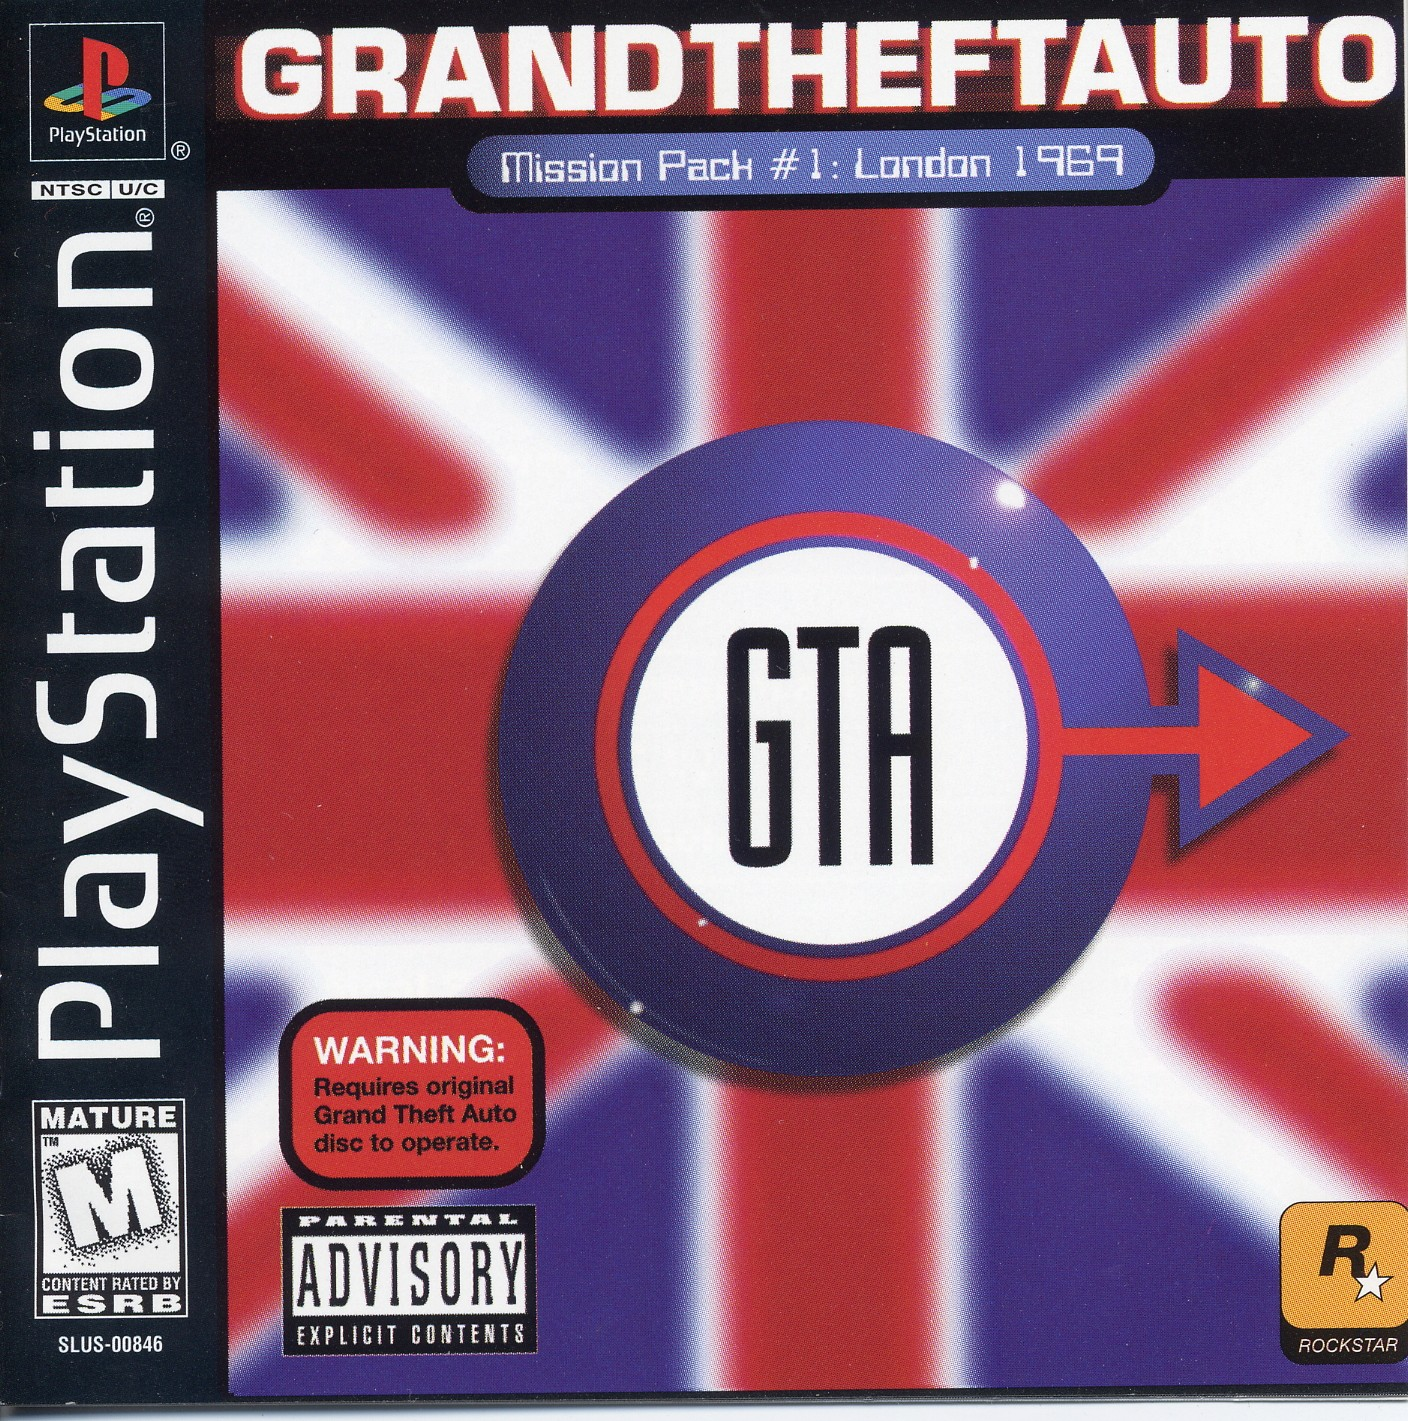 Grand Theft Auto - Mission Pack 1 - London 1969 [SLUS-00846]